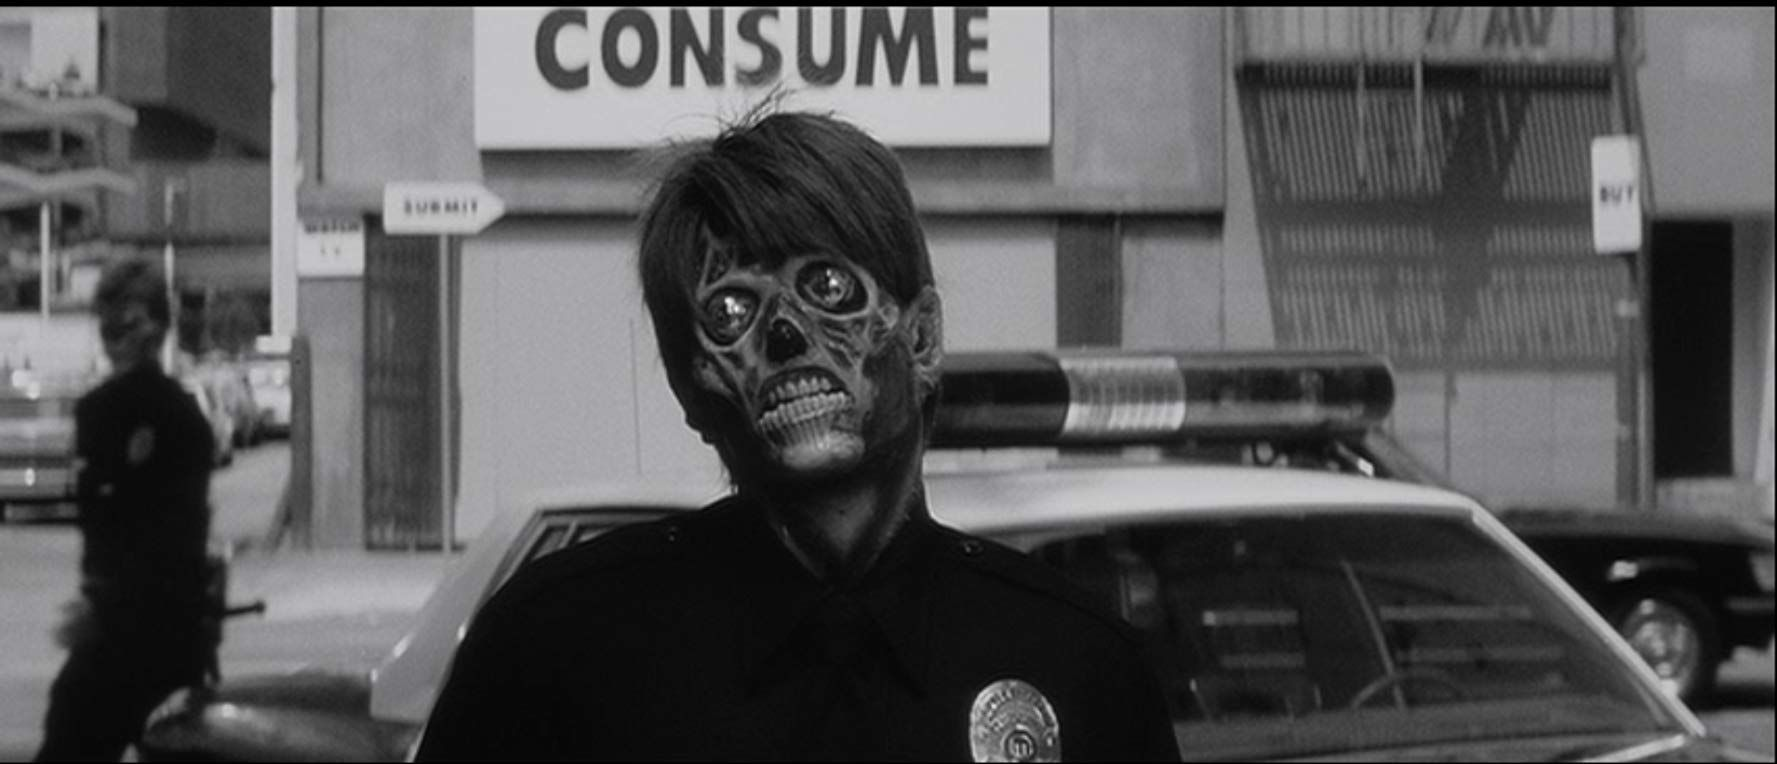 Image showing a scene from the movie They Live